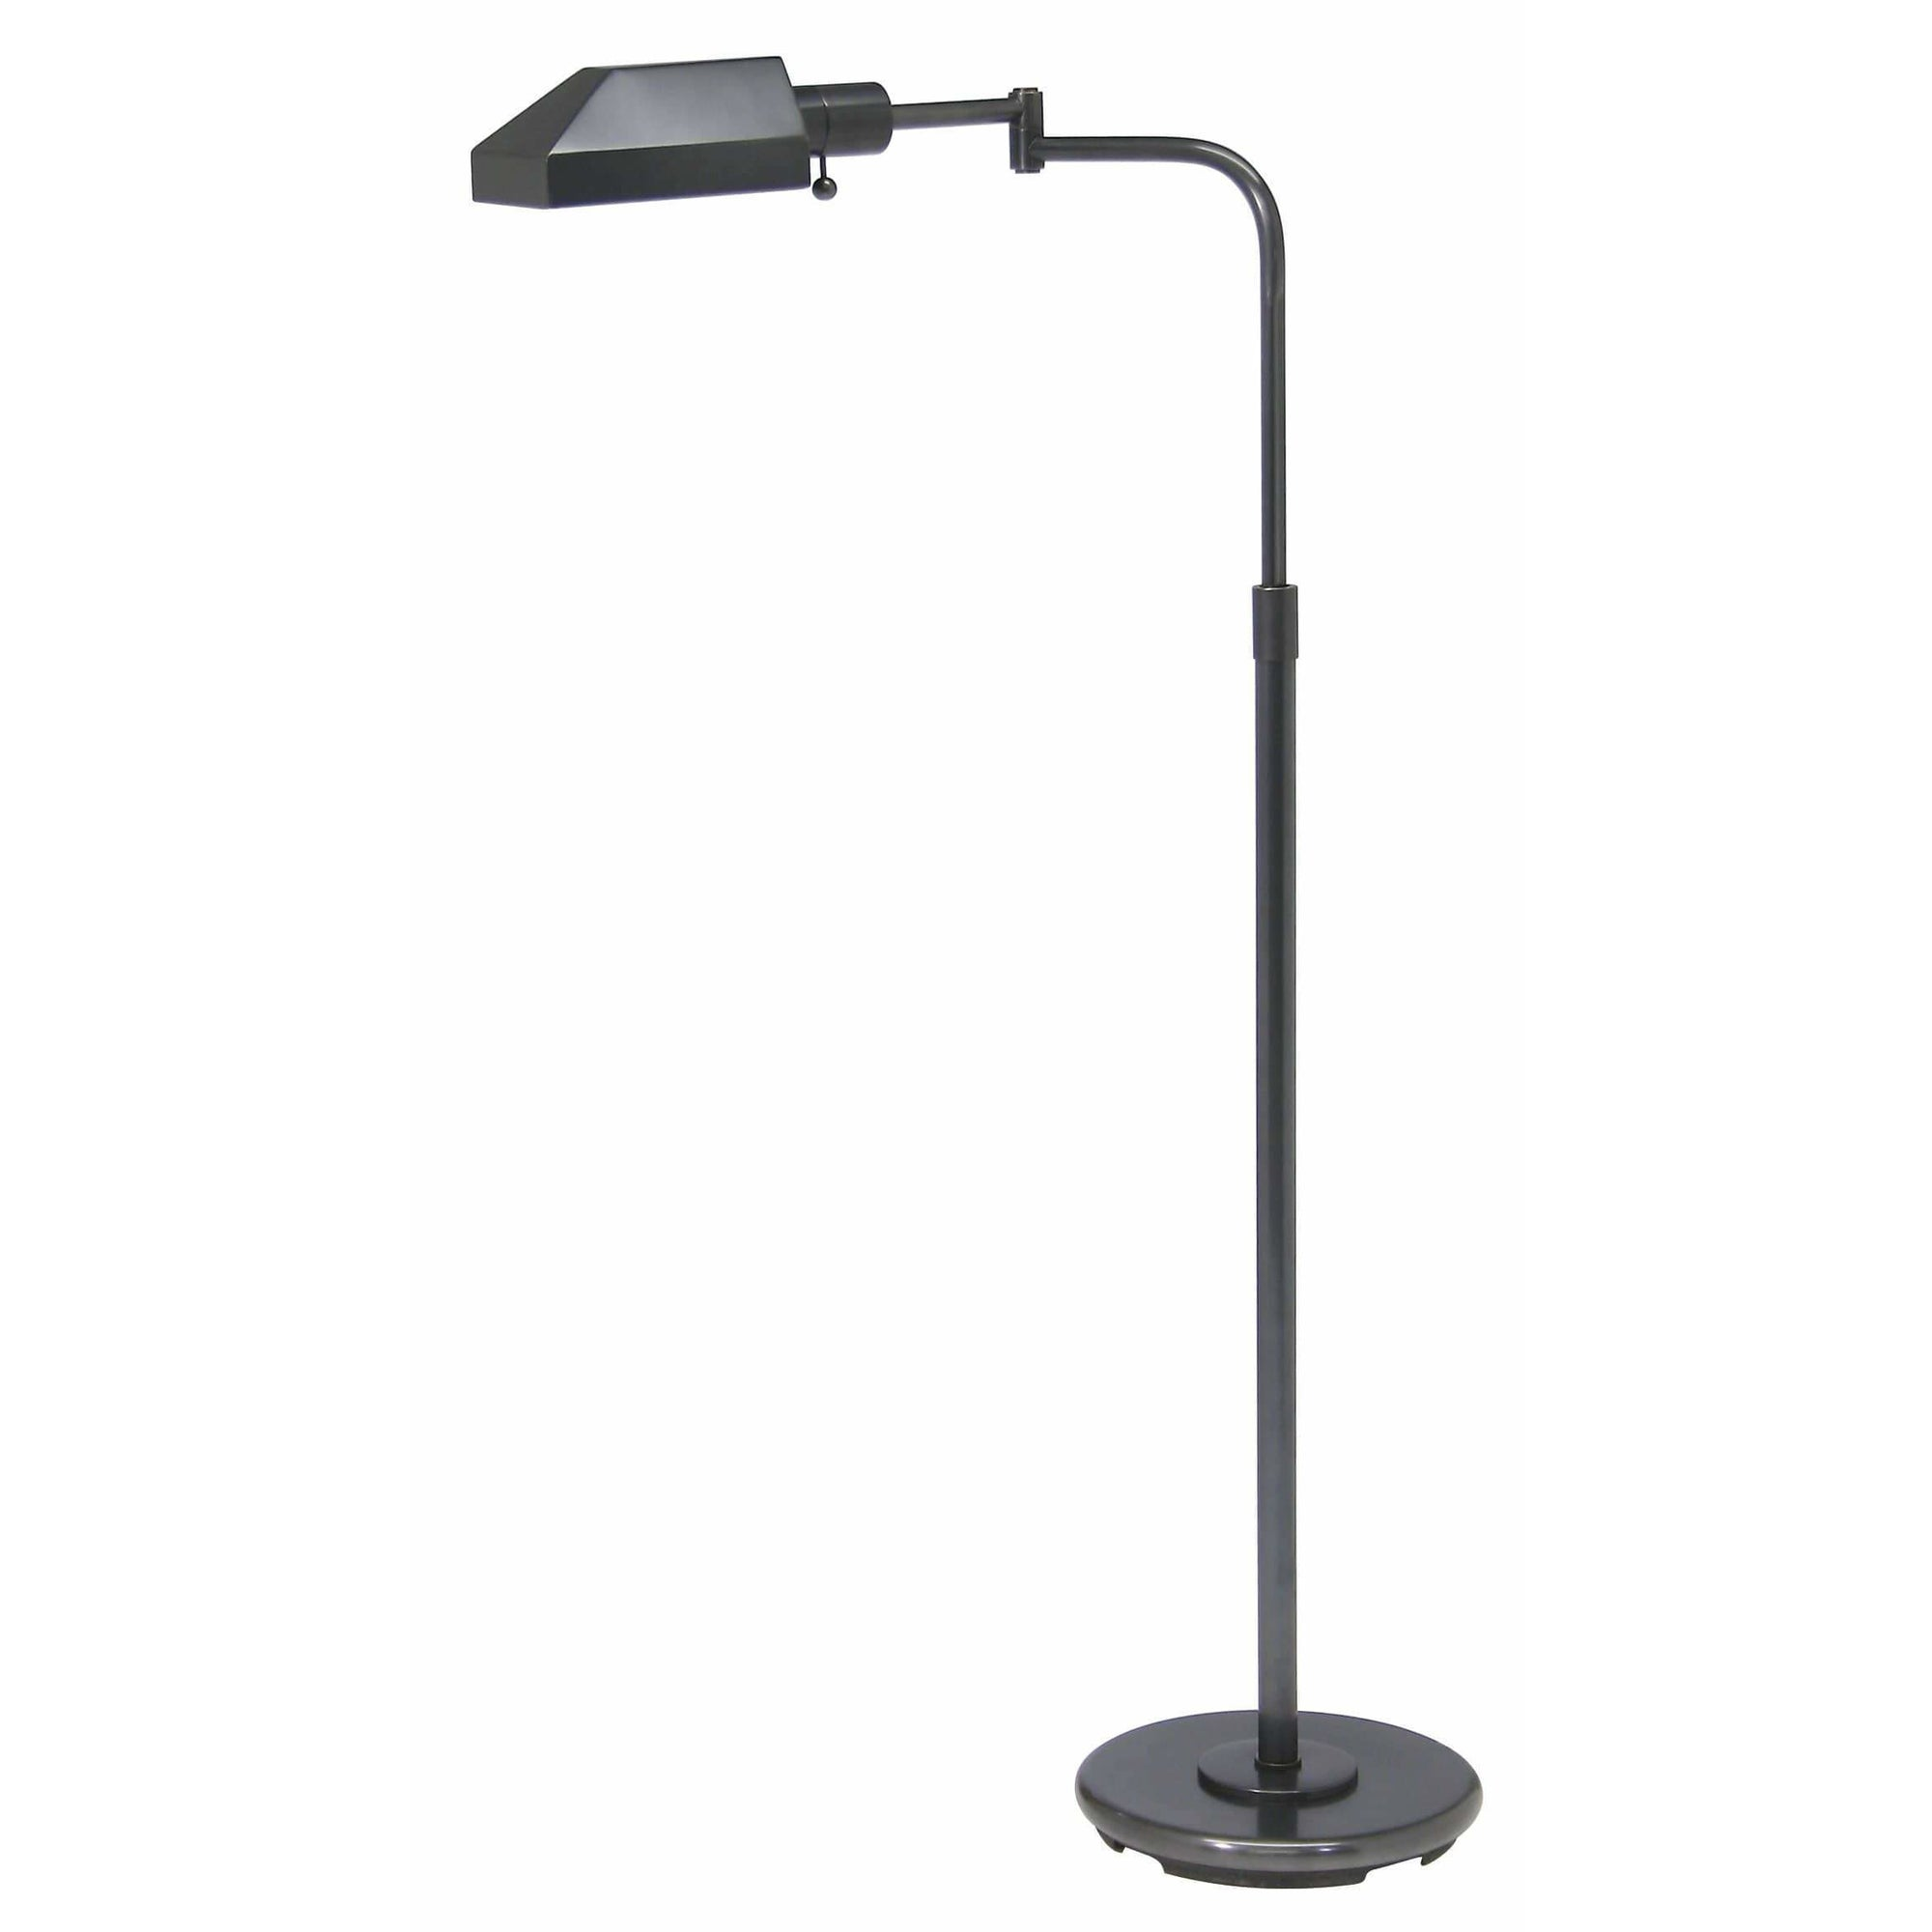 House Of Troy Floor Lamps Home Office Adjustable Pharmacy Floor Lamp by House Of Troy PH100-91-J